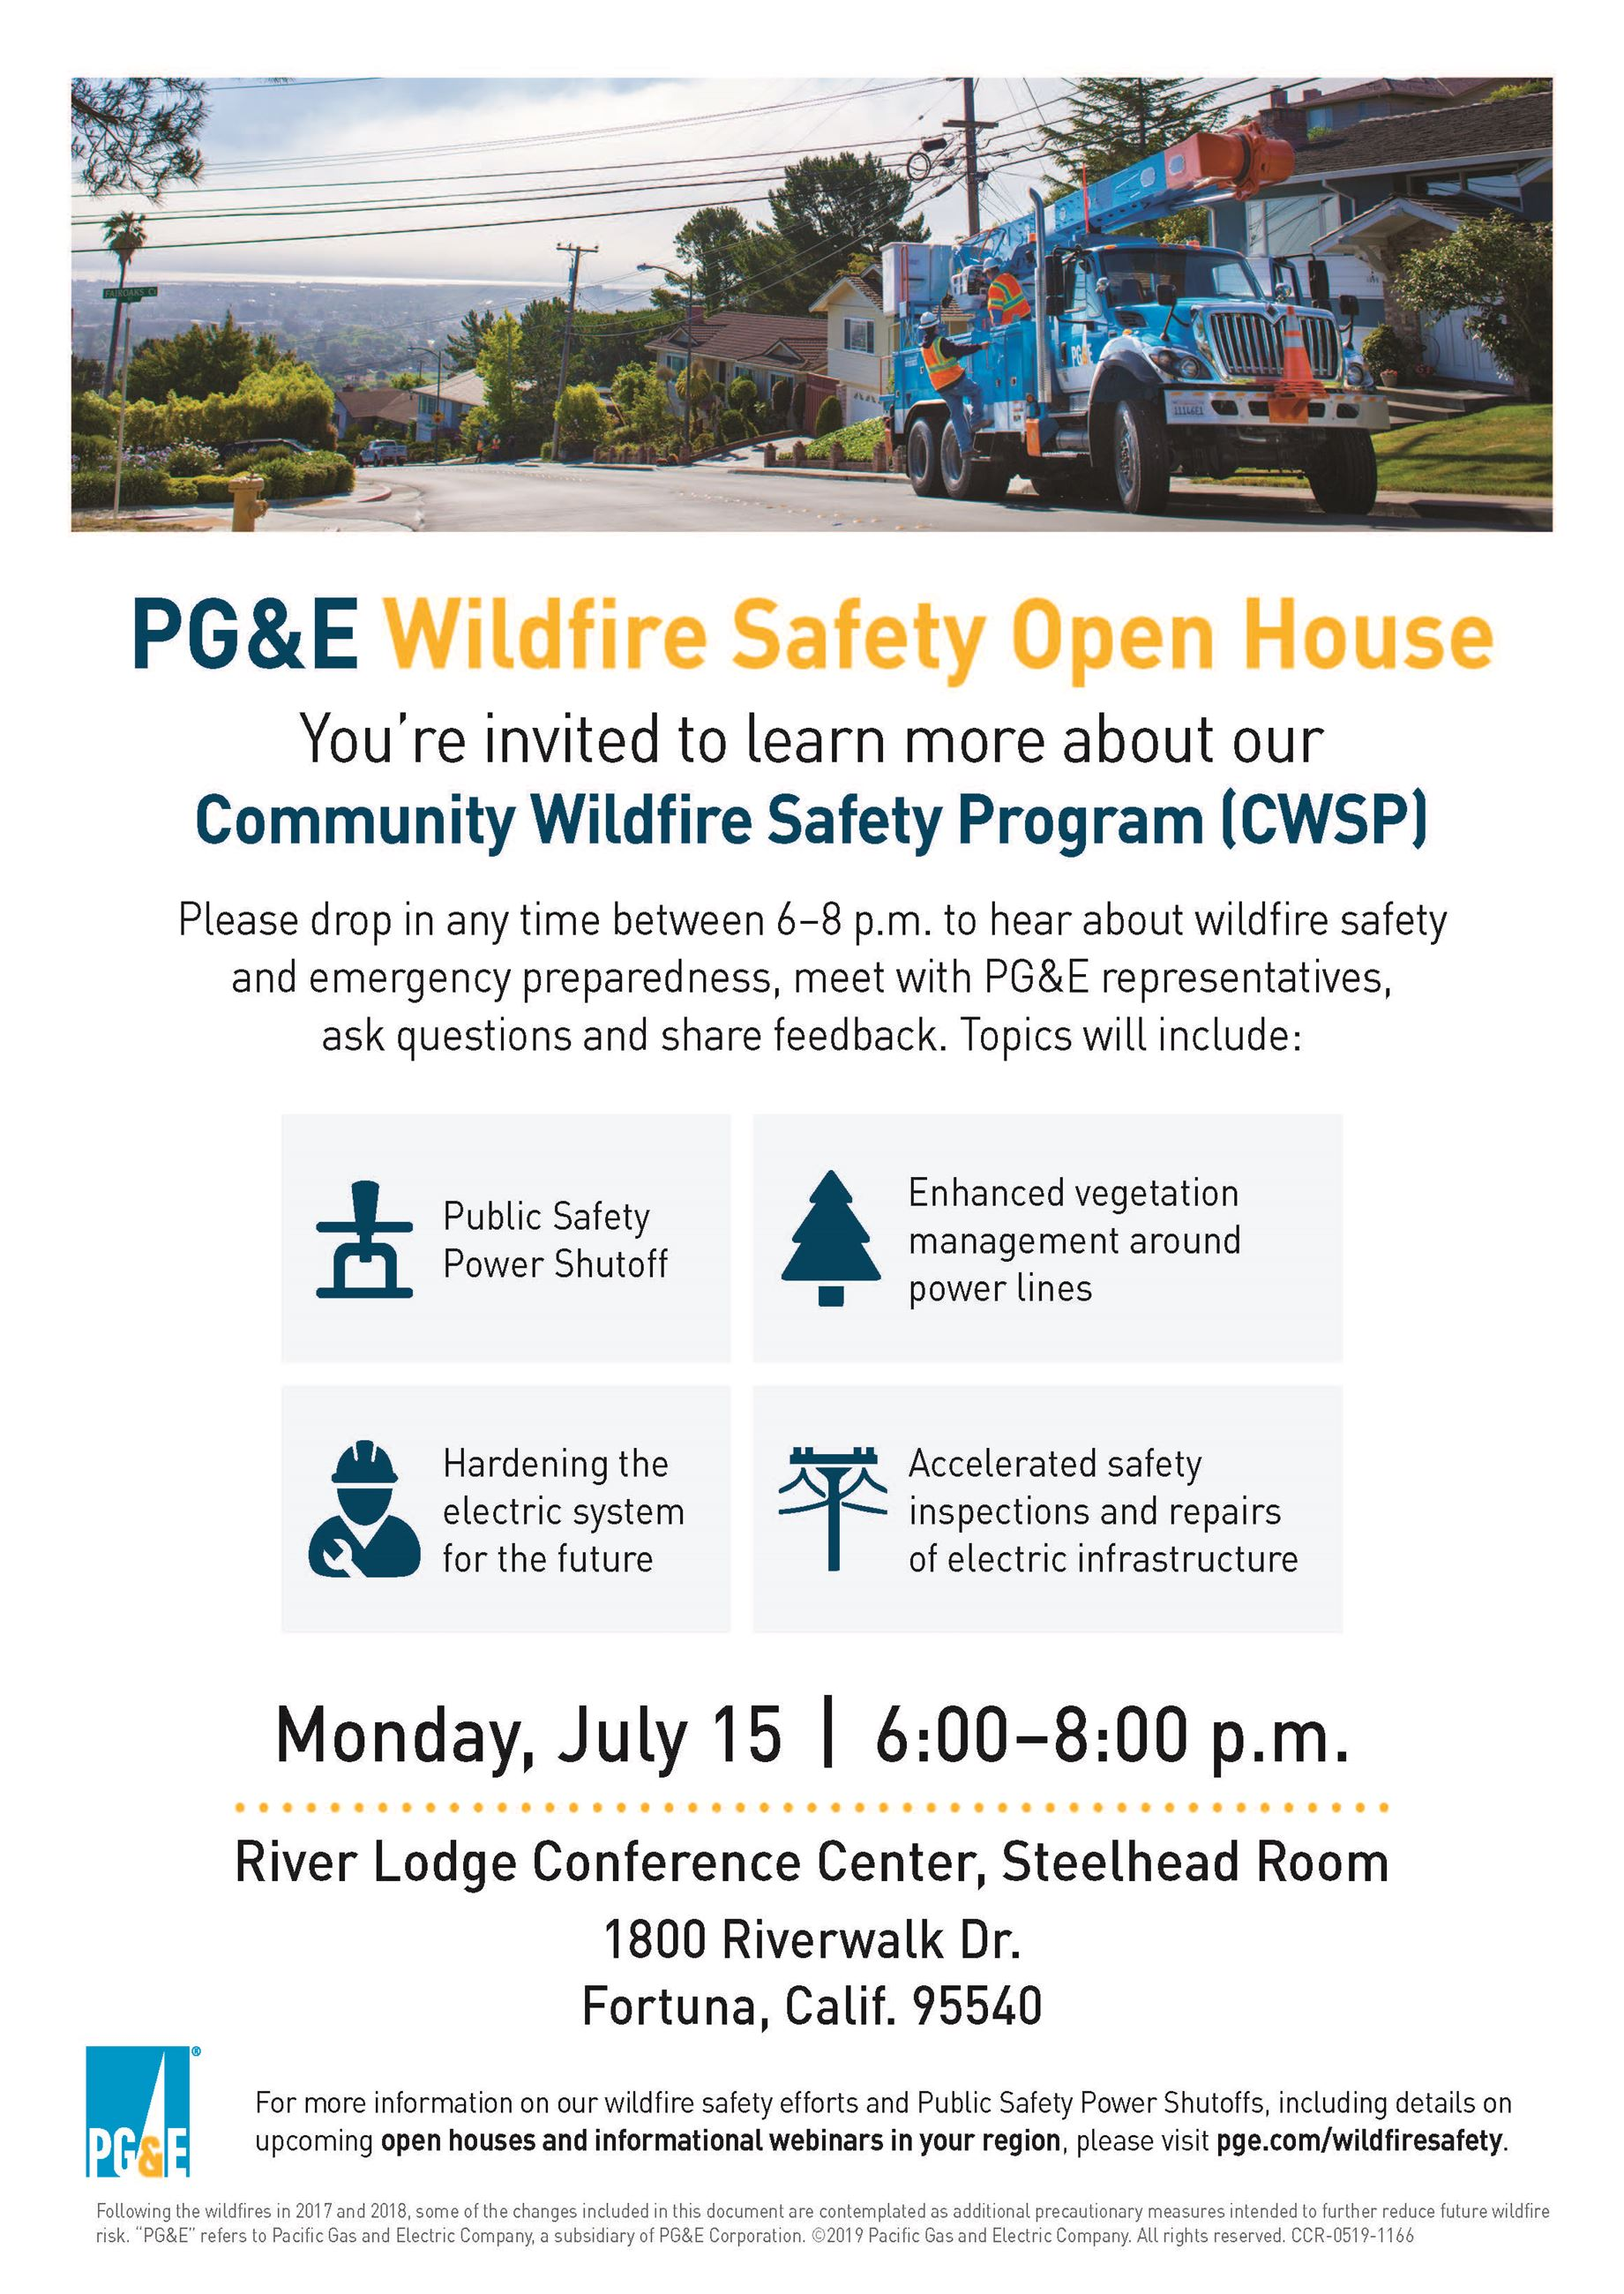 PG&E Open House Invitation Flyer